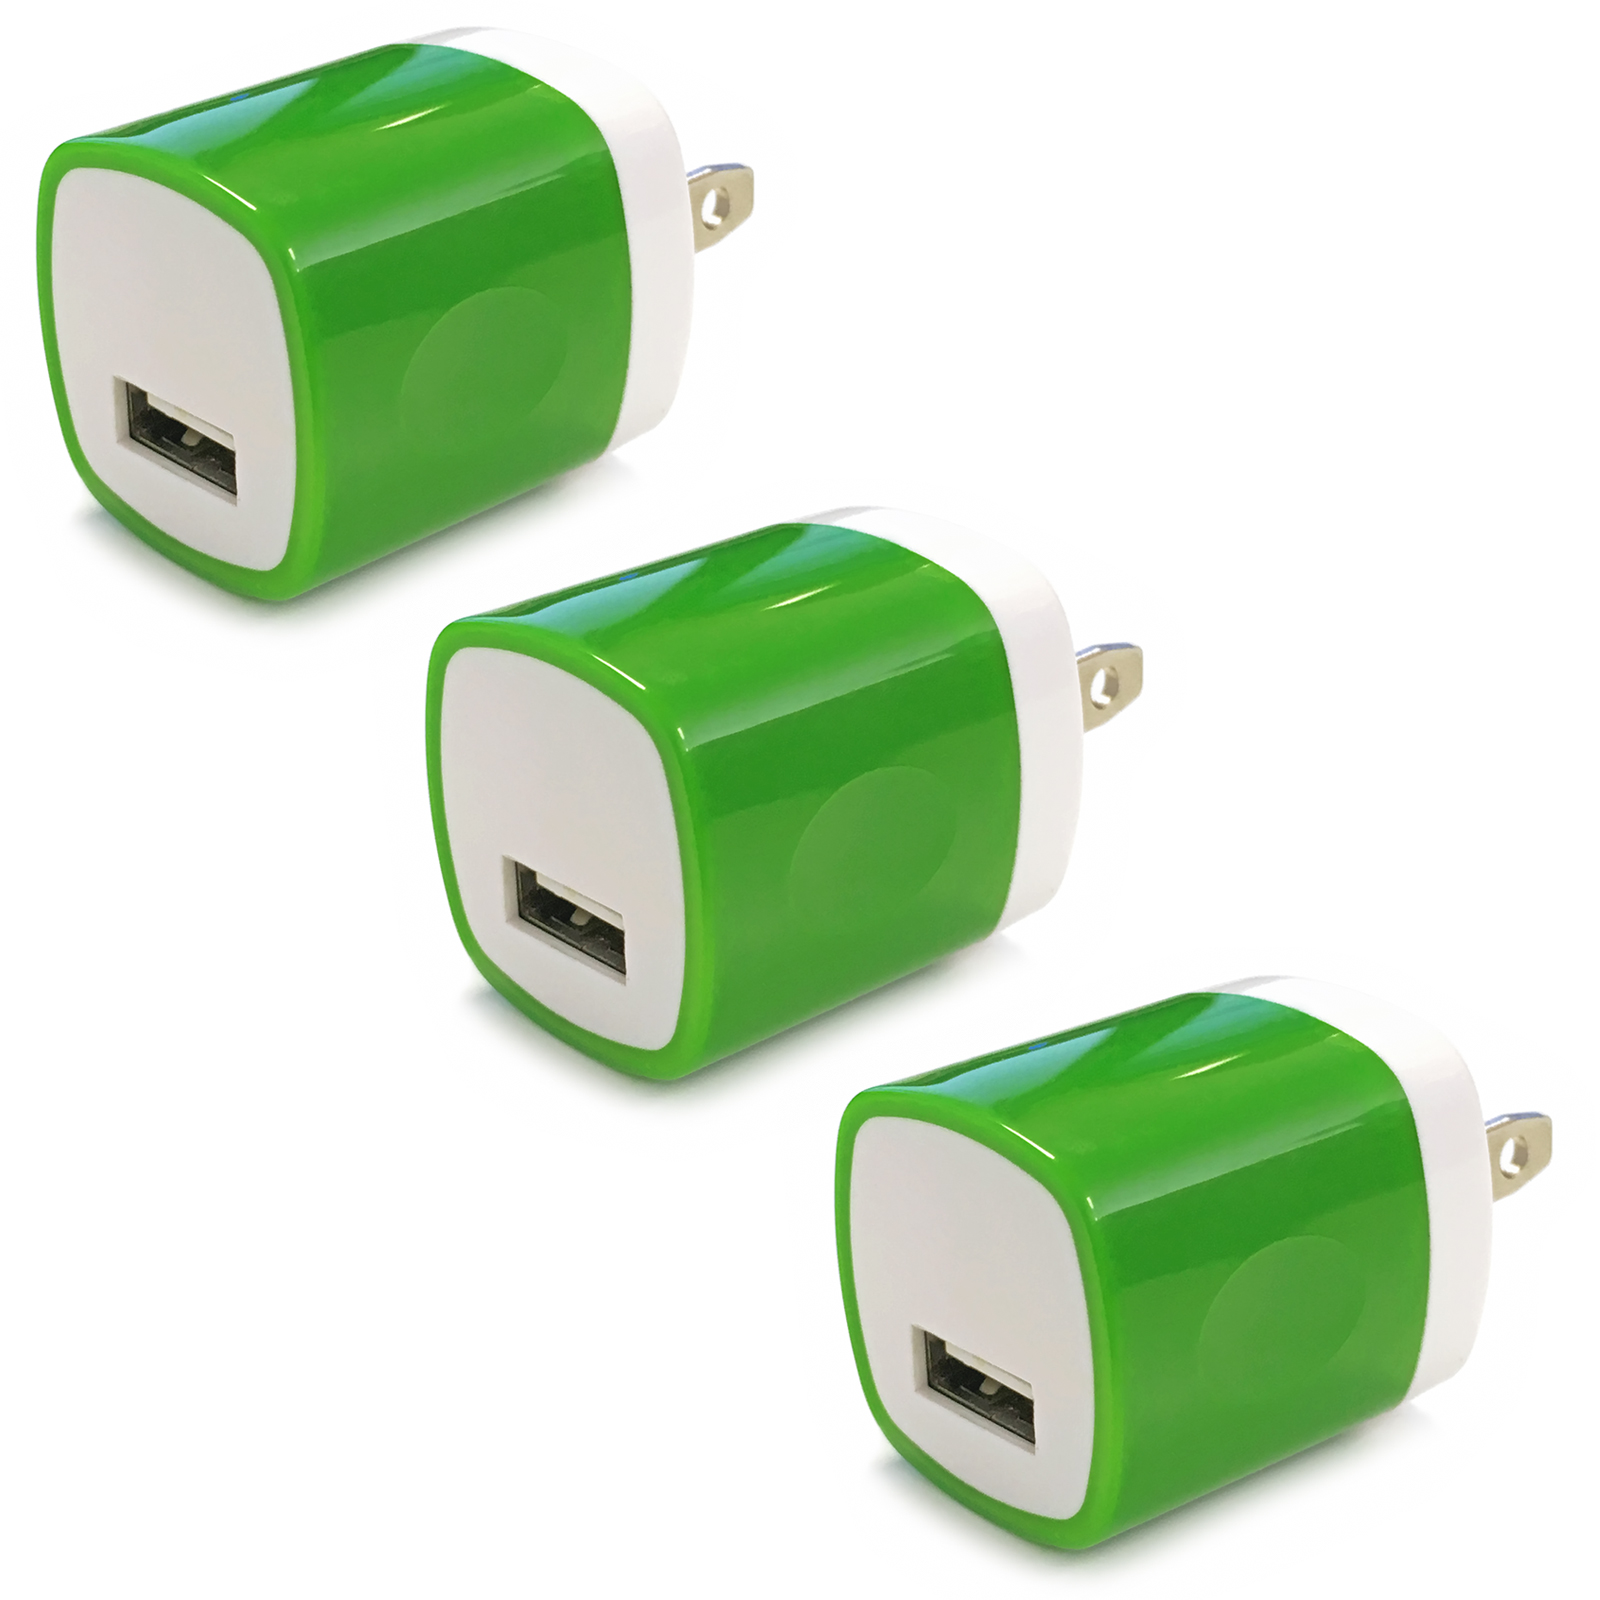 3x USB Wall Charger, Charger Adapter, FREEDOMTECH 1Amp Single Port Quick Charger Plug Cube for iPhone 7/6S/6S Plus/6 Plus/6/5S/5, Samsung Galaxy S7/S6/S5 Edge, LG, HTC, Huawei, Moto, Kindle and More